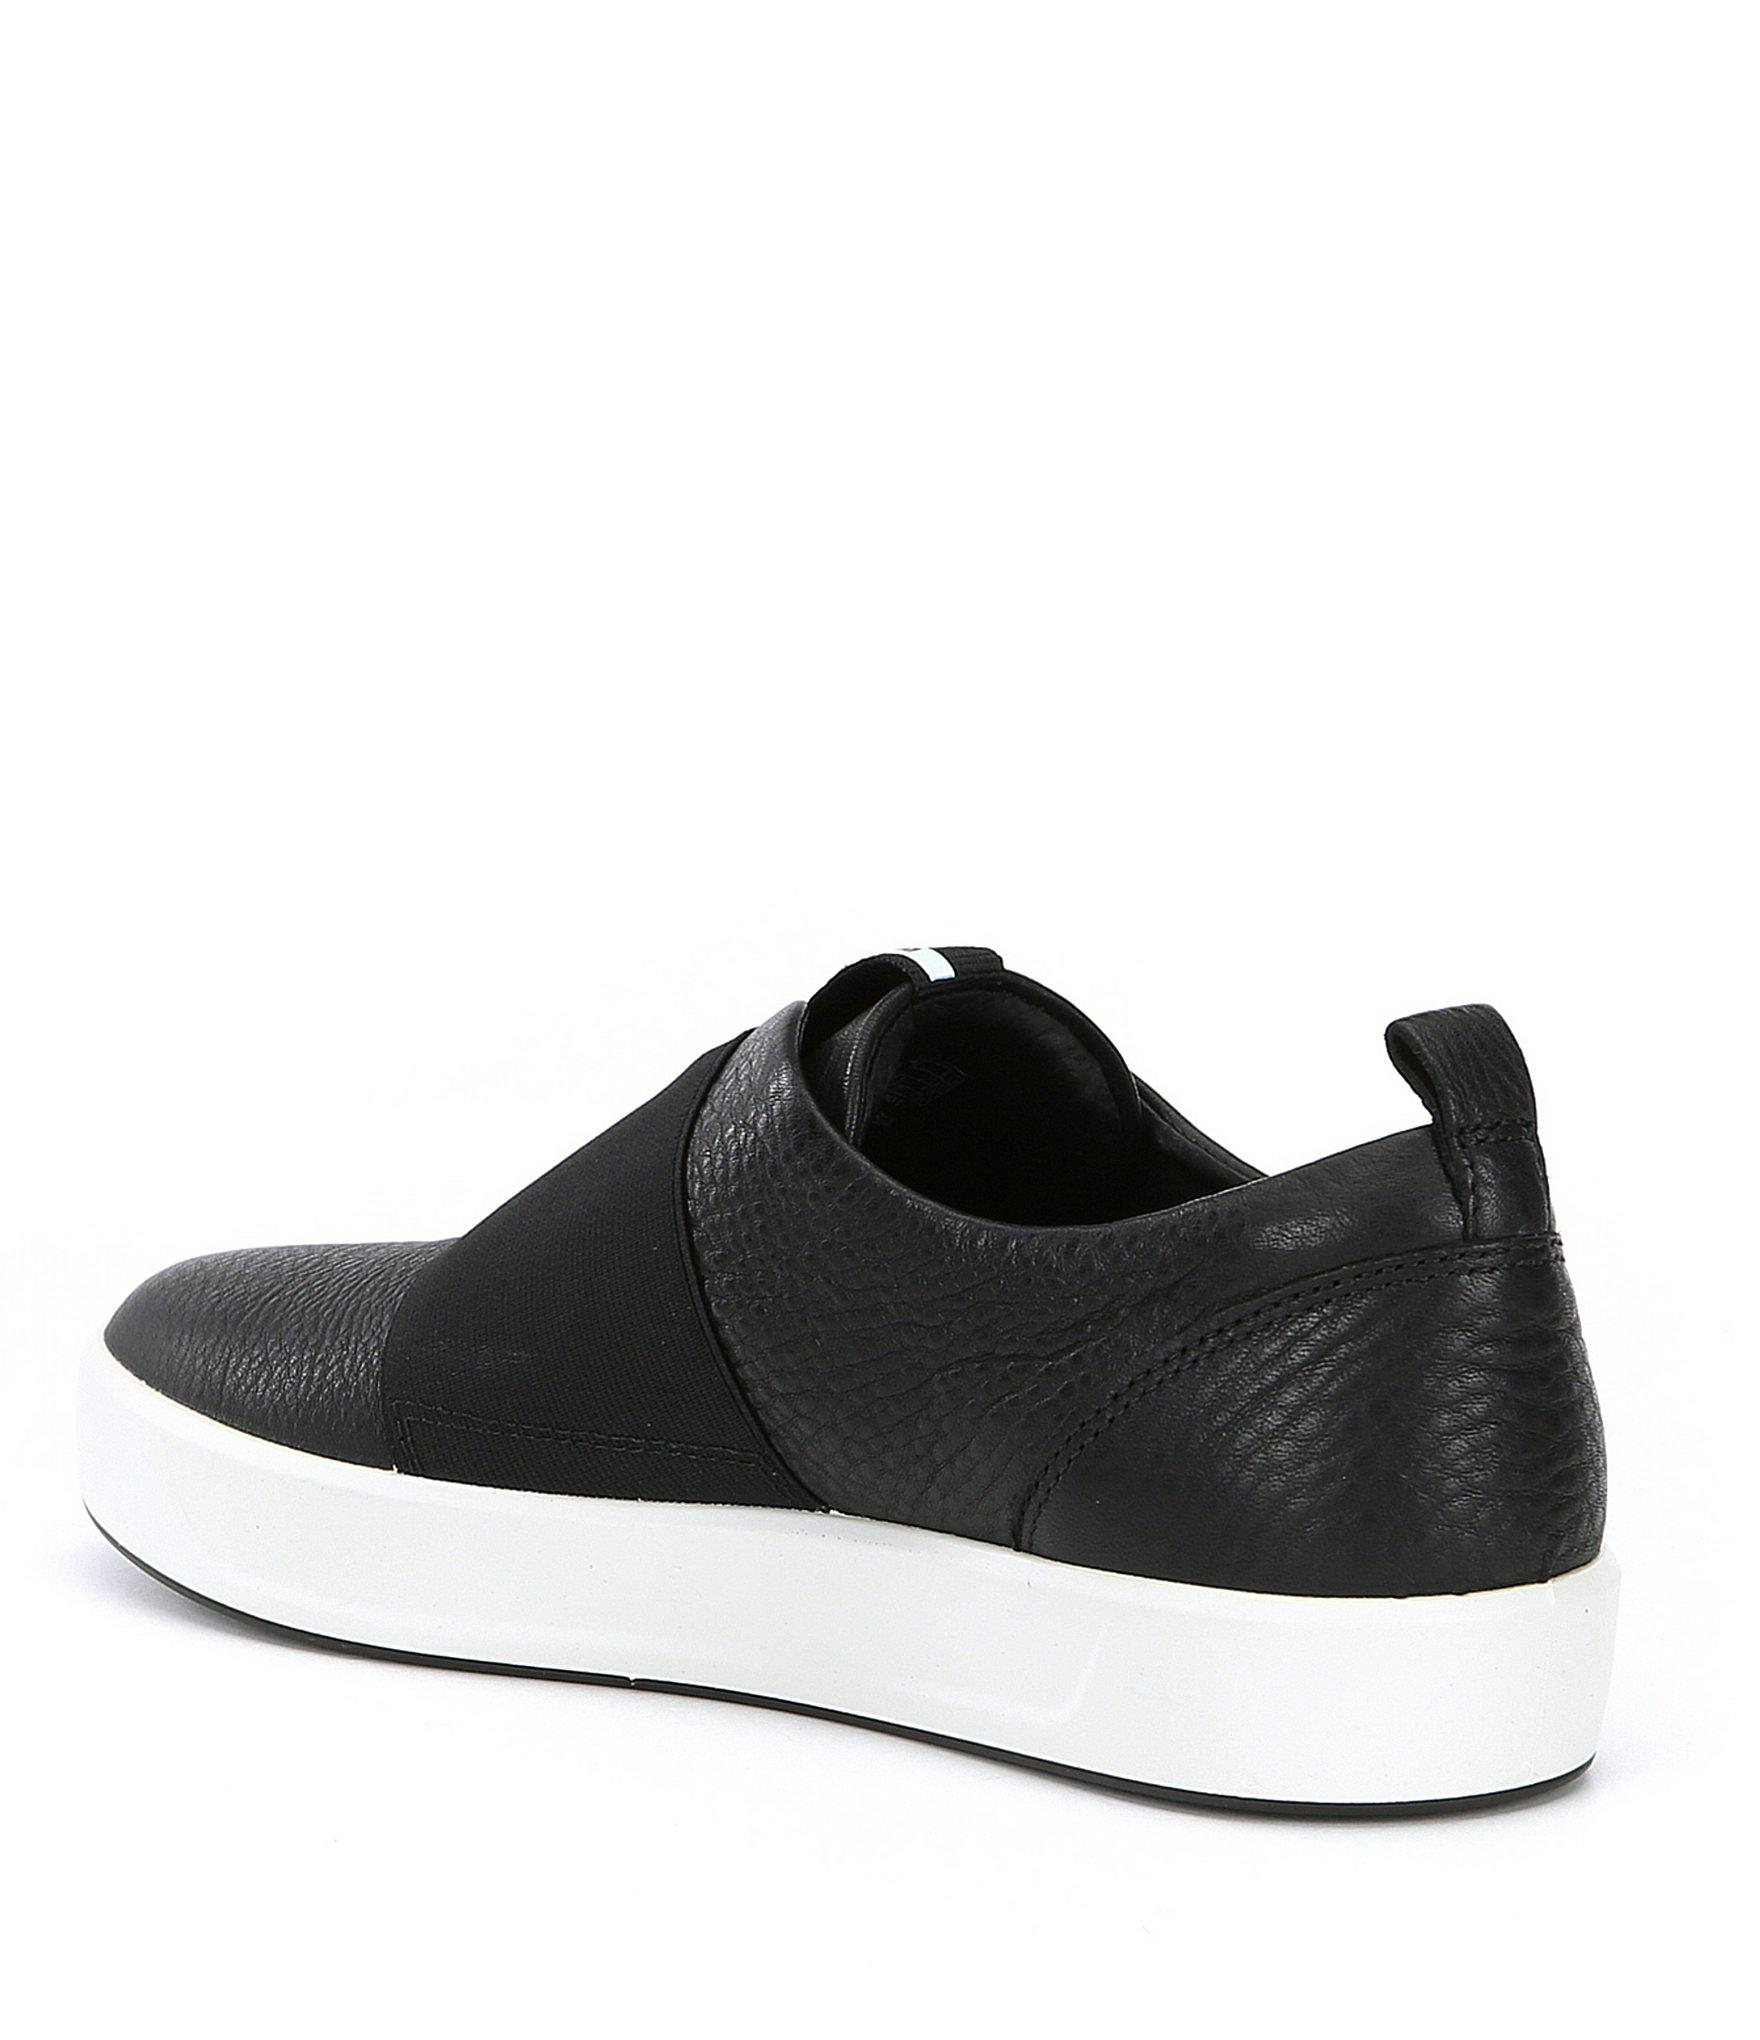 ce0362fa86c2e Black Women's Soft 8 Band Low Slip-on Sneakers